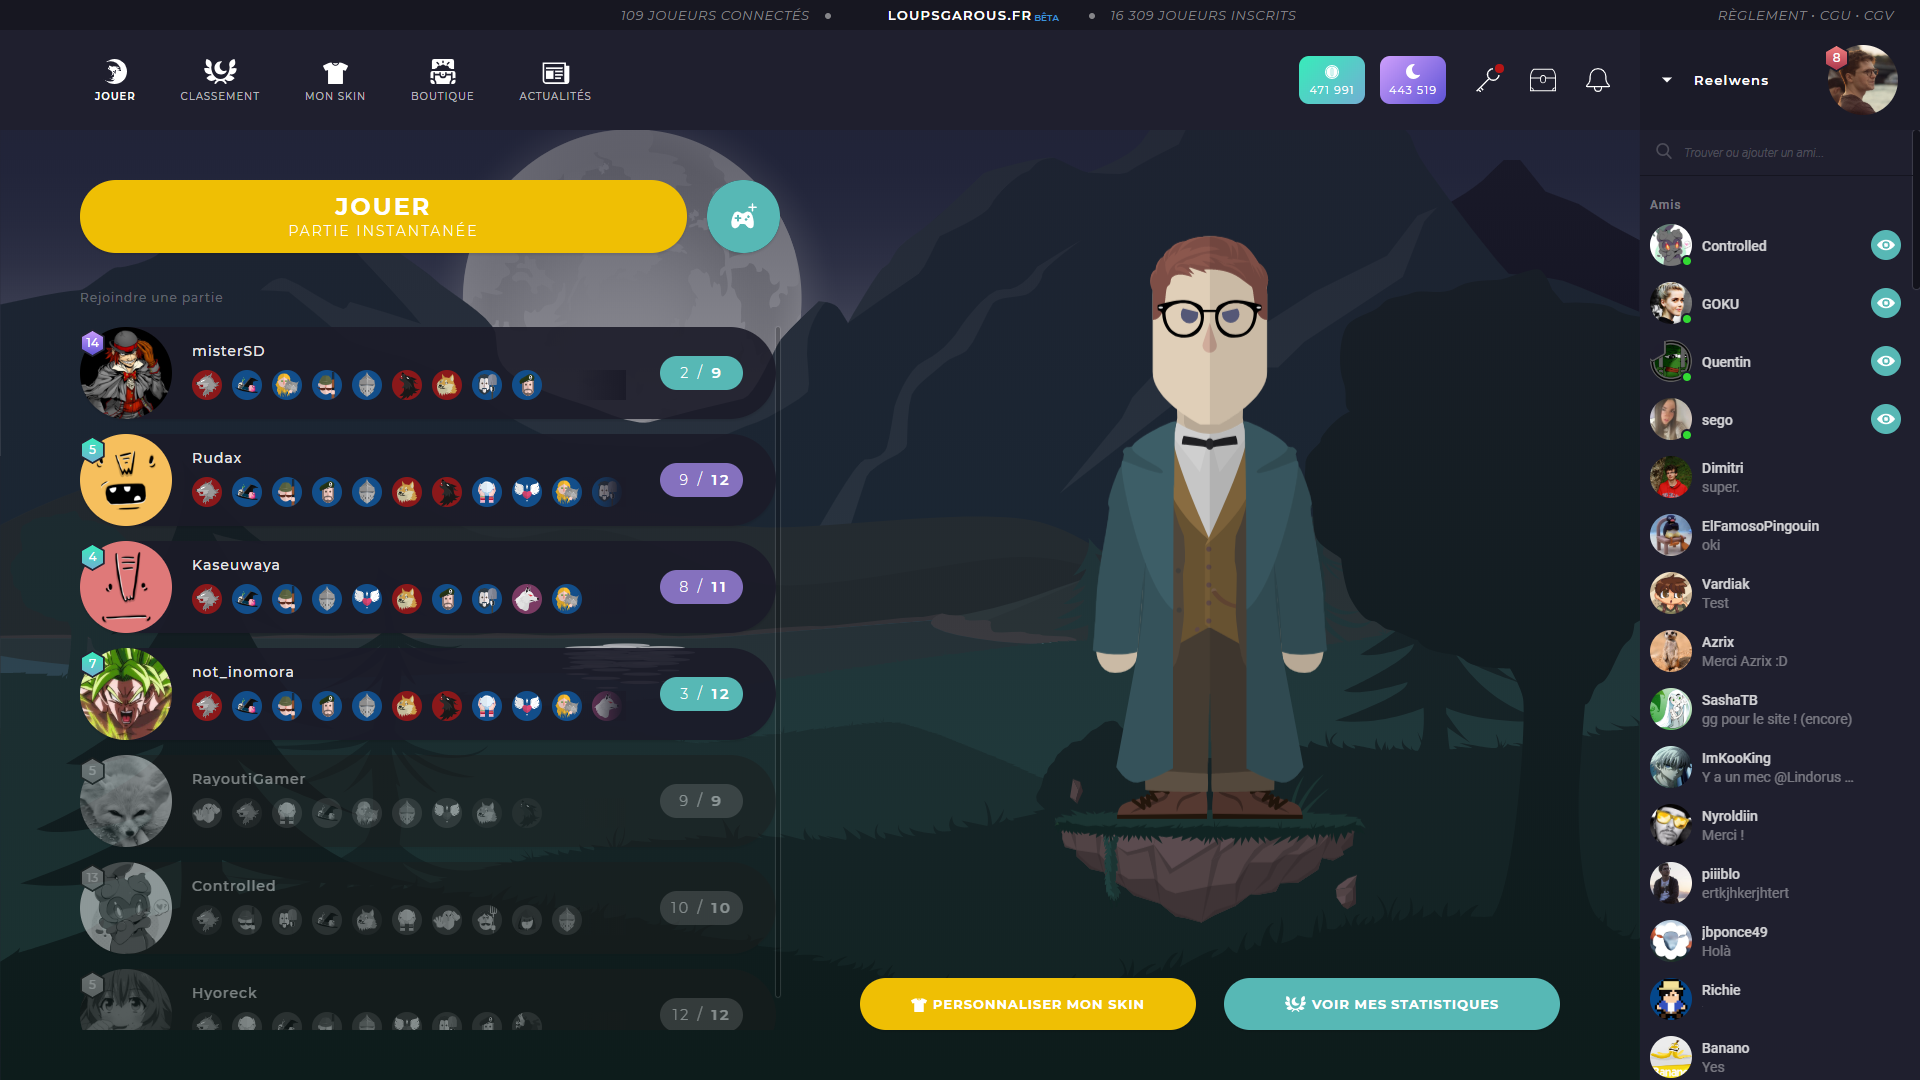 Interface d'accueil de LoupsGarous en Dark mode